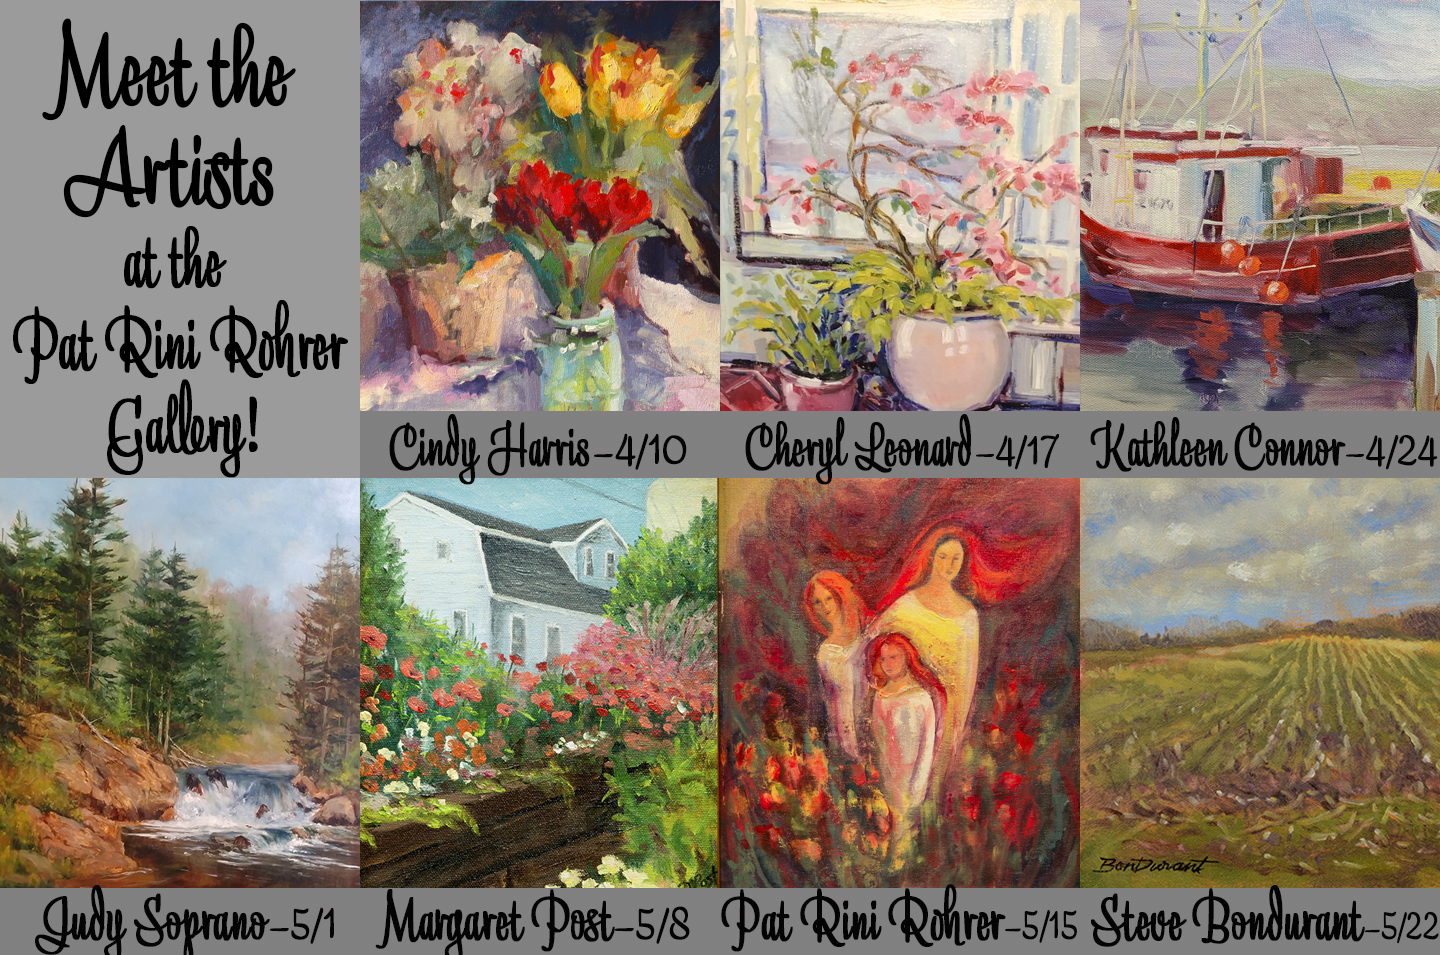 Canandaigua In Bloom at the Pat Rini Rohrer Gallery